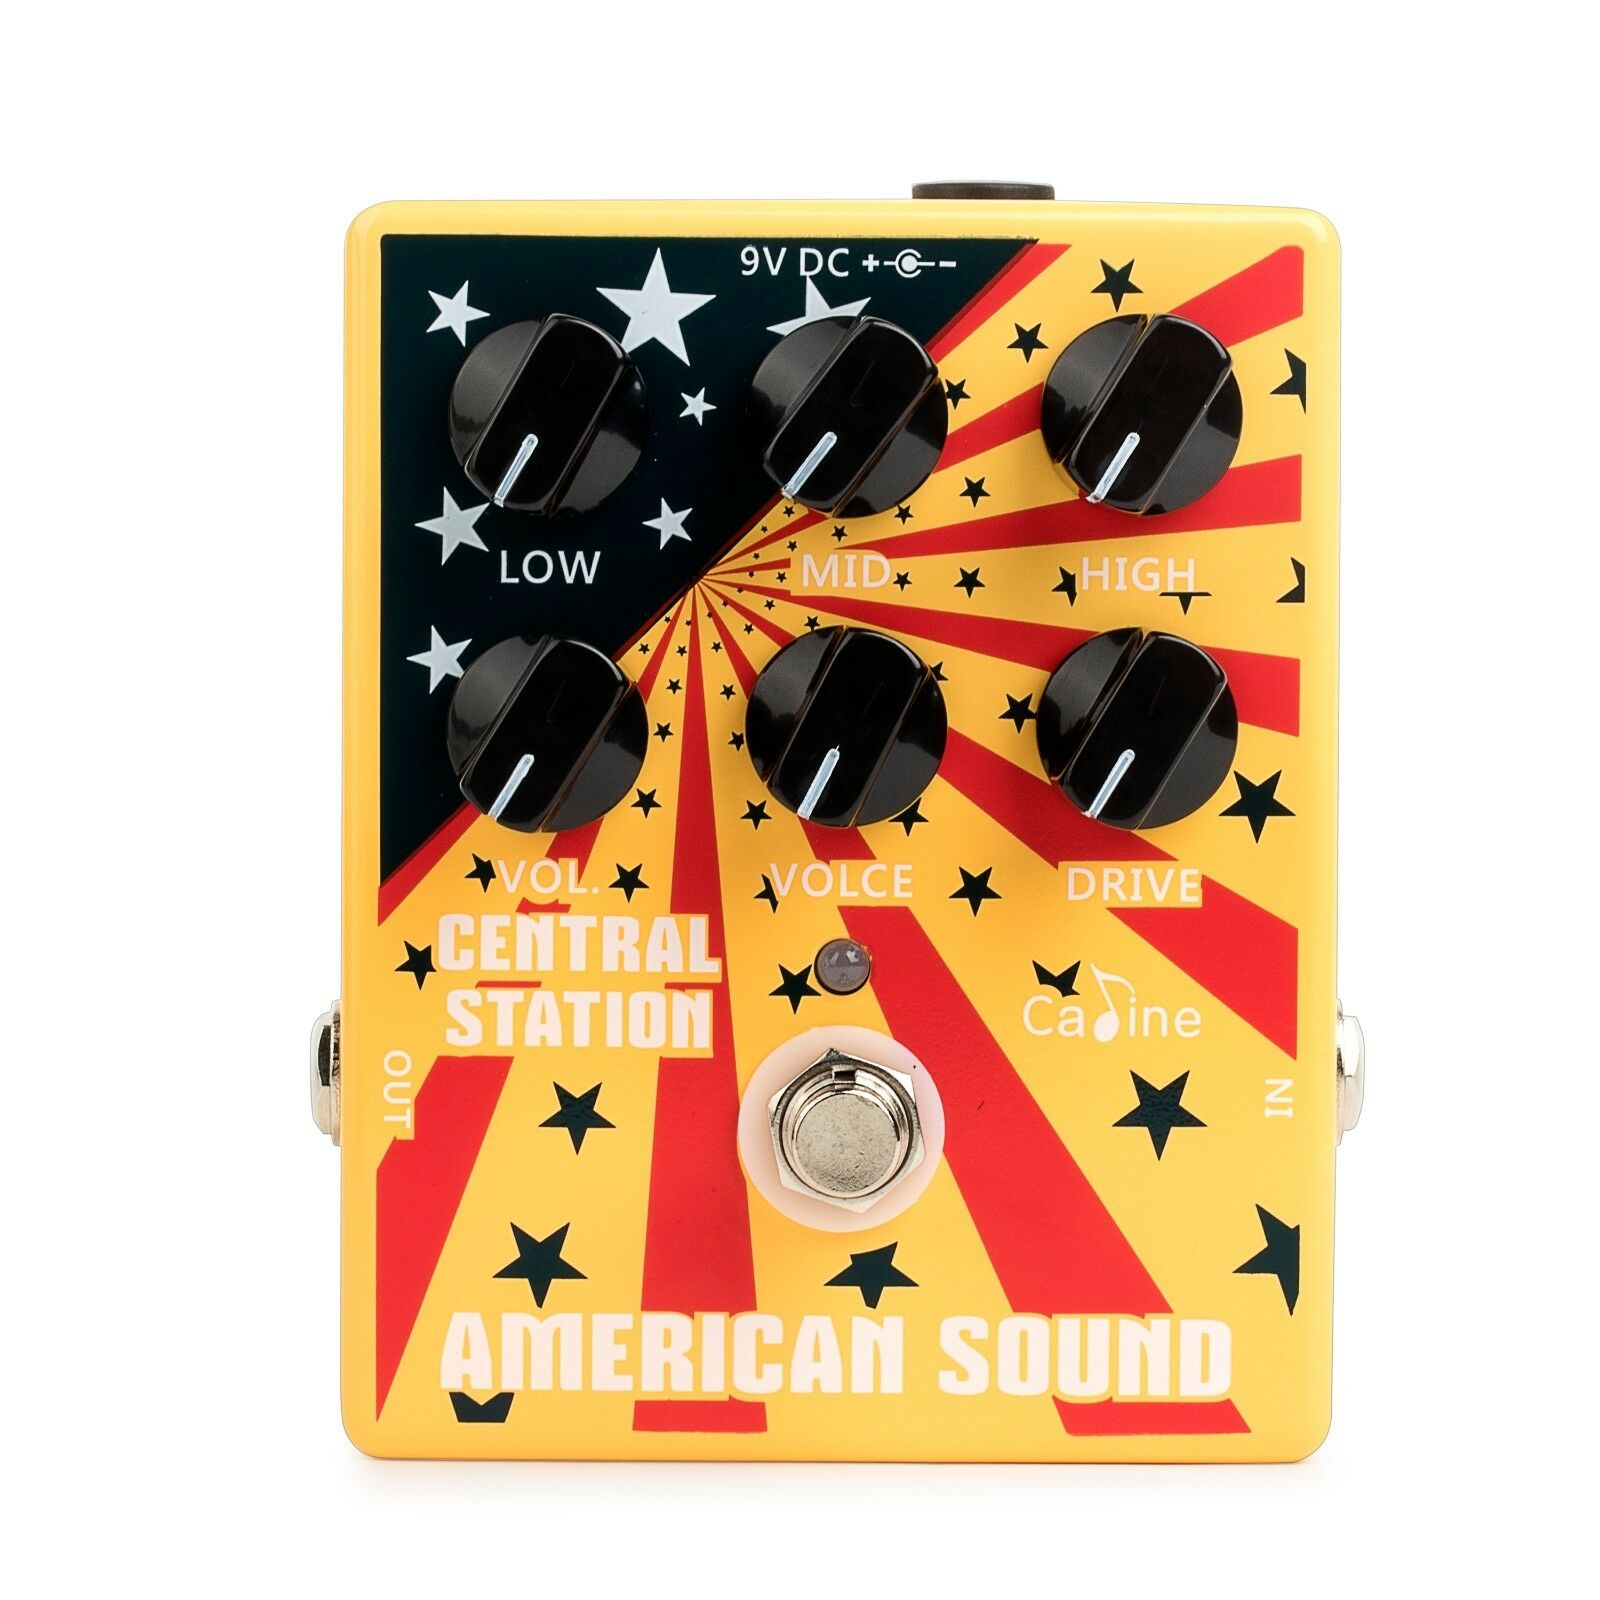 Caline CP-55 American Sound (Fender Tone) Effects Pedal